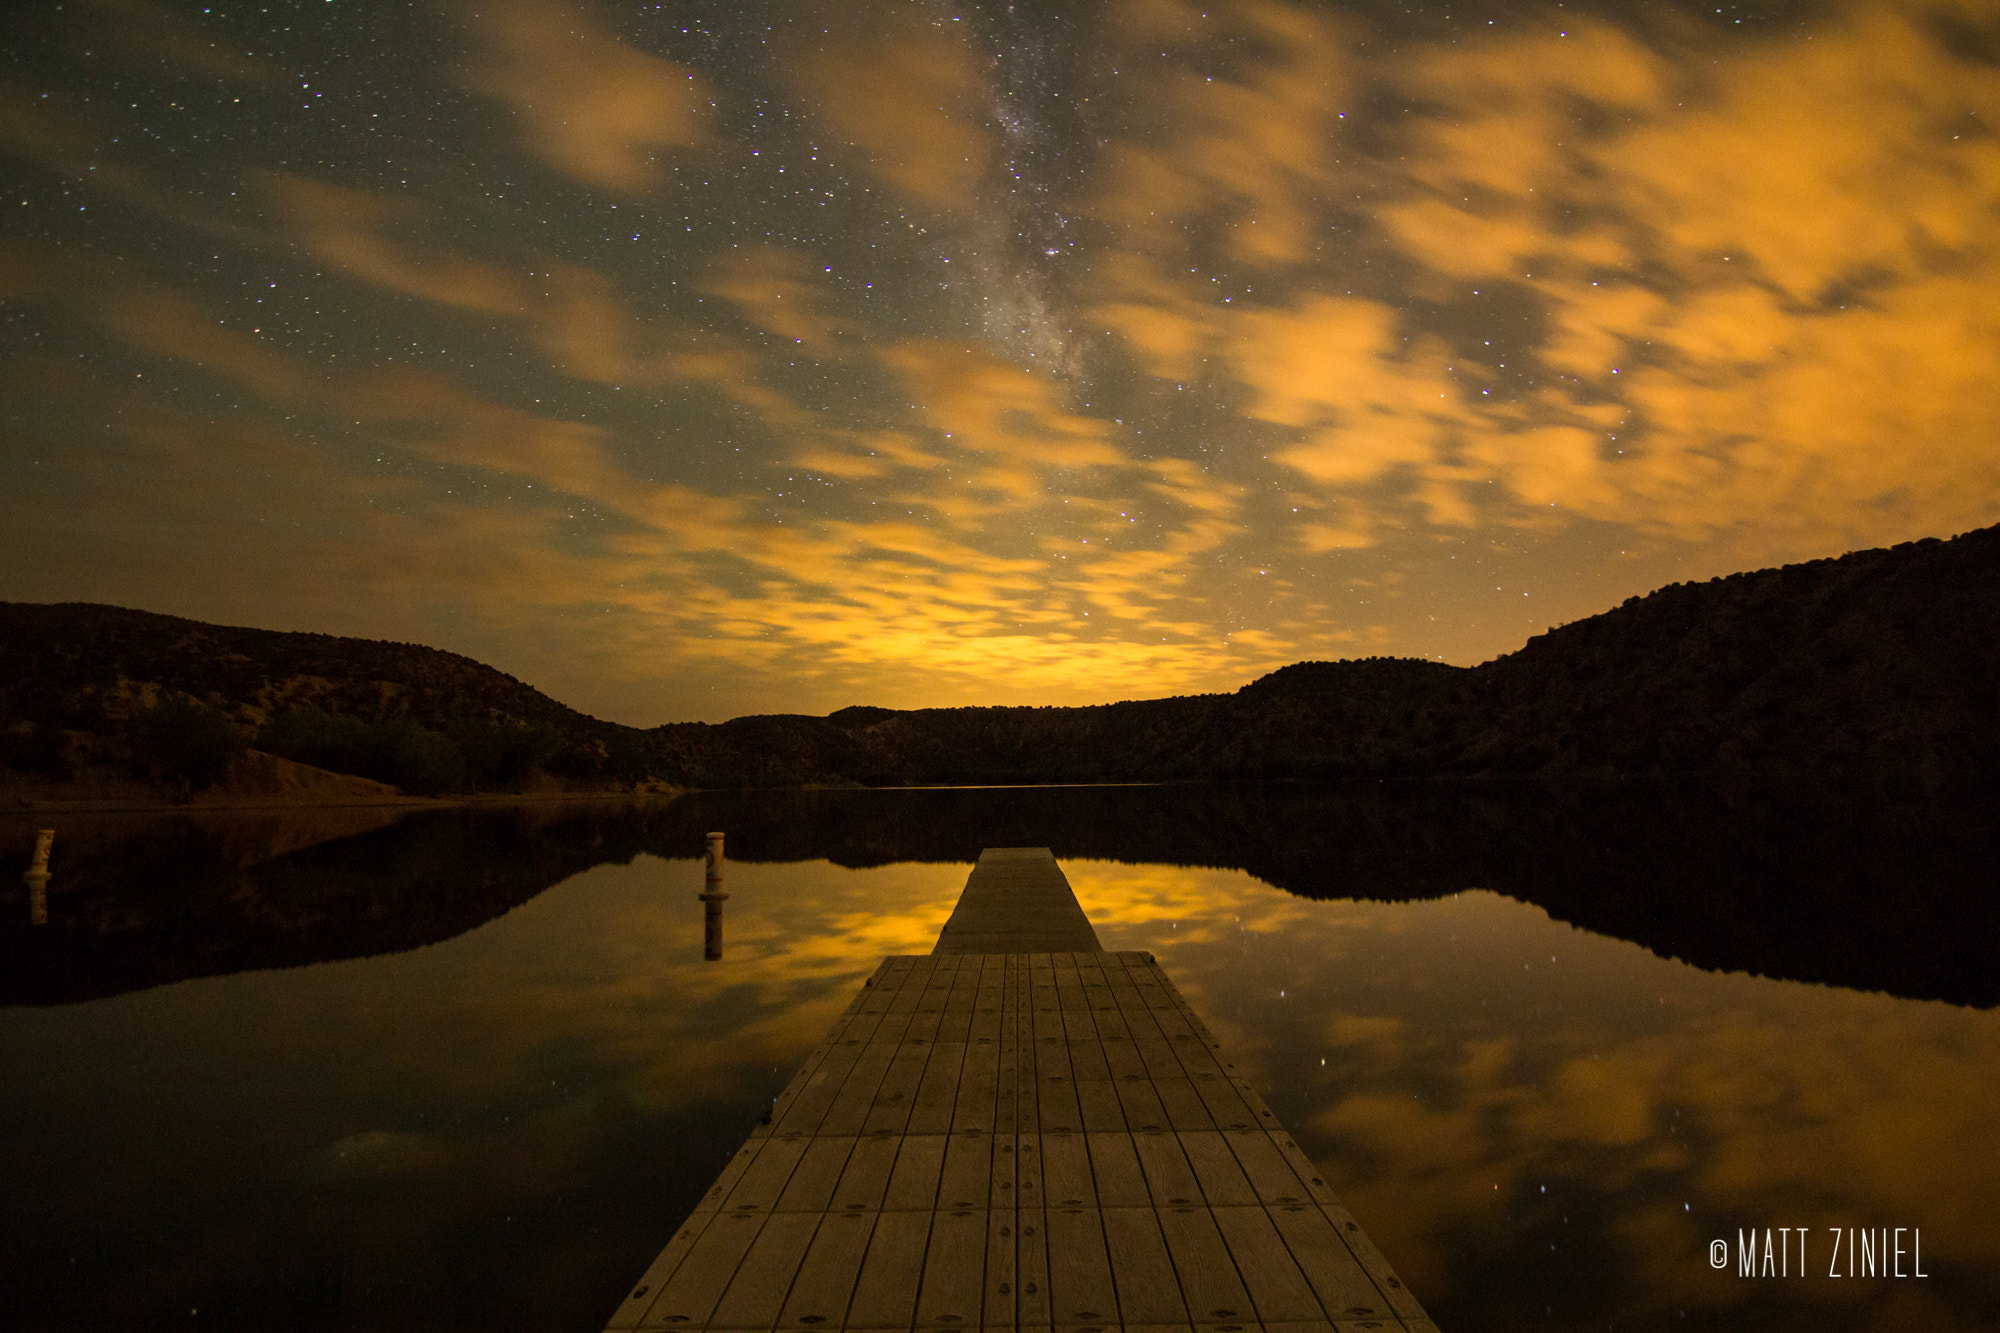 Photograph The Dock of Dreams by Matt Ziniel on 500px